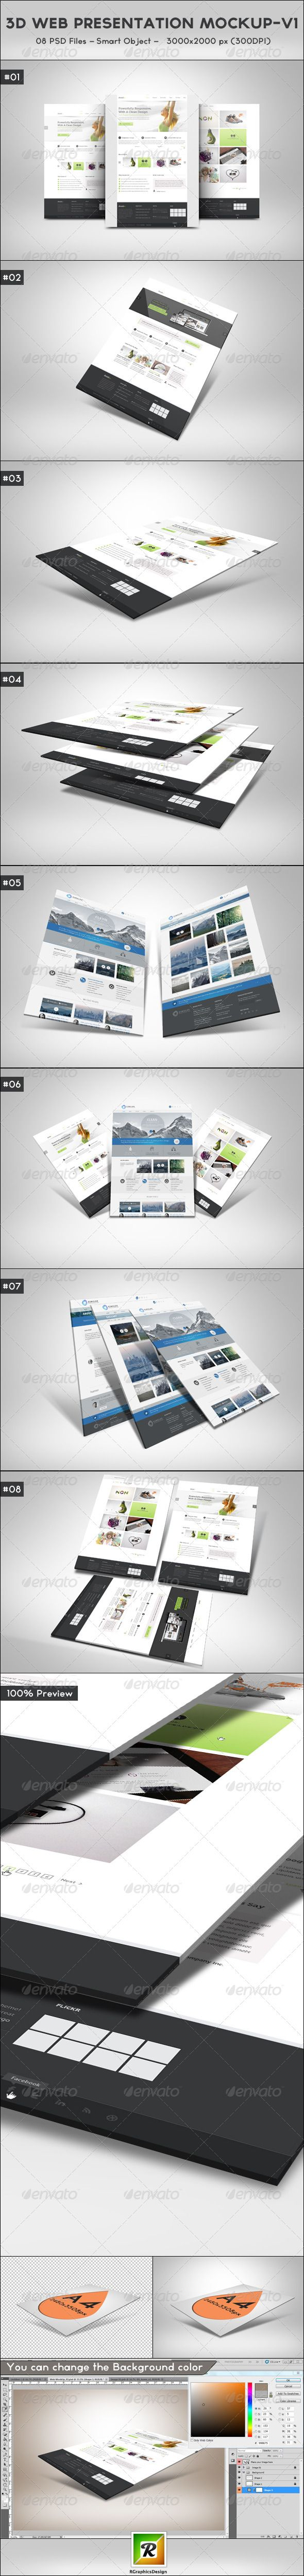 3D Web Presentation Mockup (V1) | R-GRAPHICS DESIGN  Project features:     08 PSD Files     Pixel Dimension: 3000×2000     Smart Object To Edit     High Resolution: 300 DPI     Layered PSD File